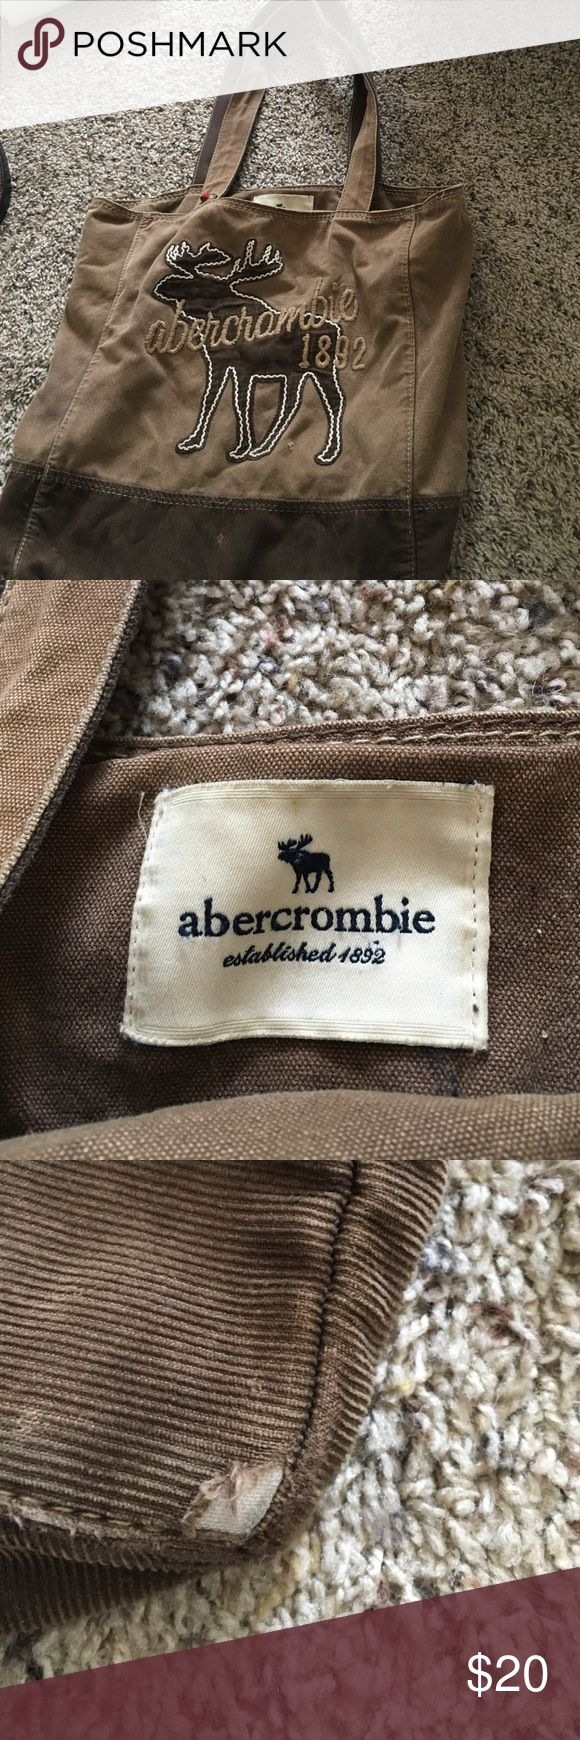 Abercrombie Bag Great condition and the perfect size.  Few tiny marks and threads that are barely noticeable. Tiny rips at the bottom at two of the corners (picture 3) Abercrombie & Fitch Bags Totes